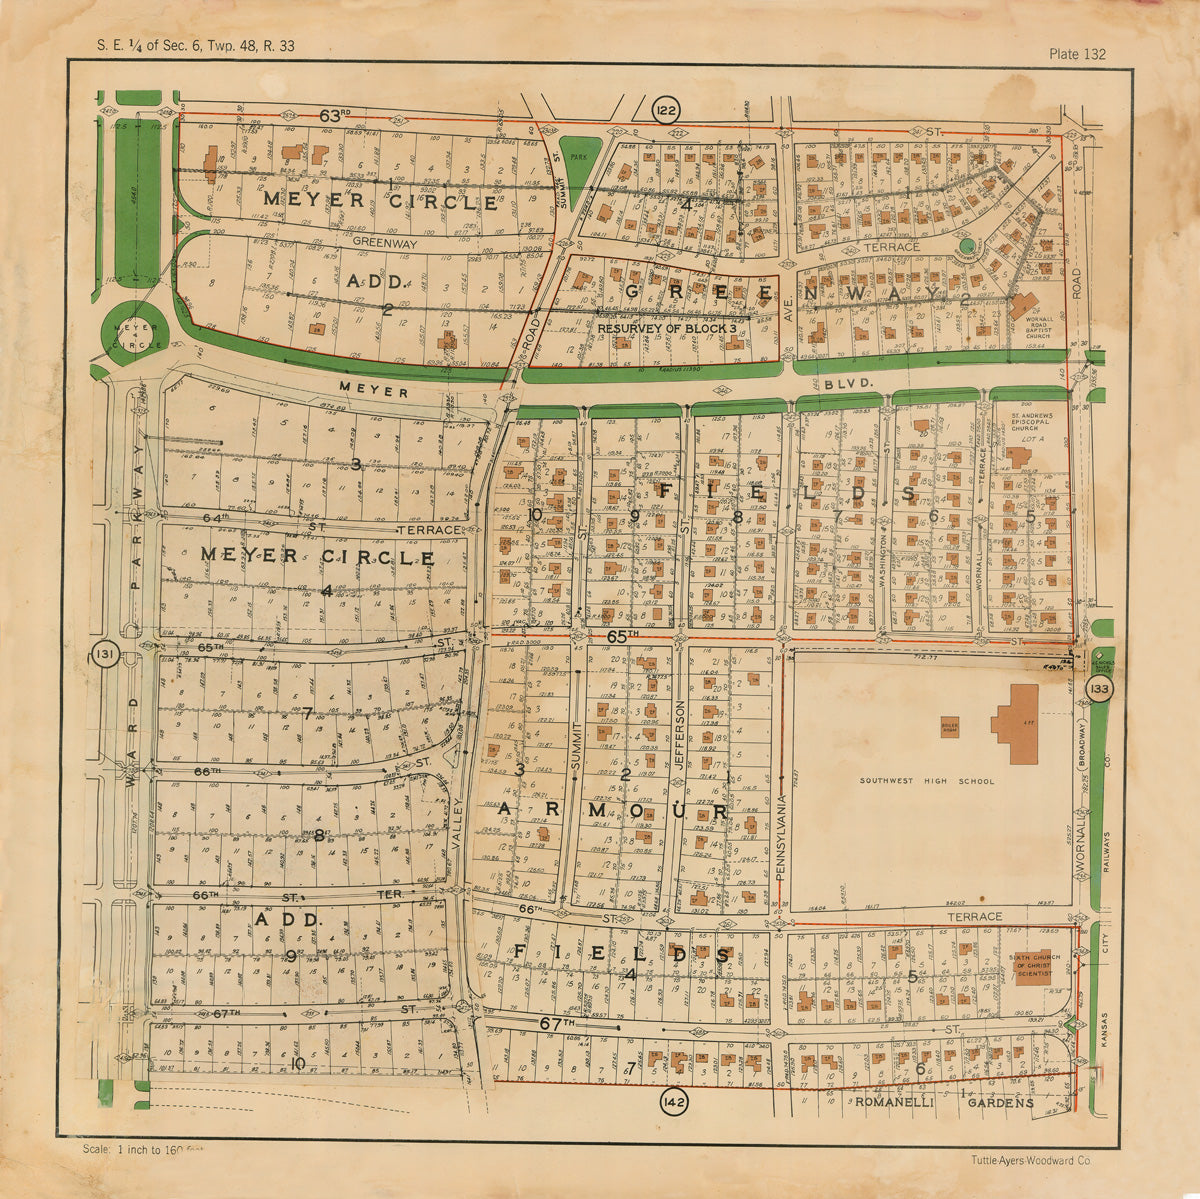 Kansas City 1925 Neighborhood Map - Plate #132 63rd-67th Ward Pkwy-Wornall